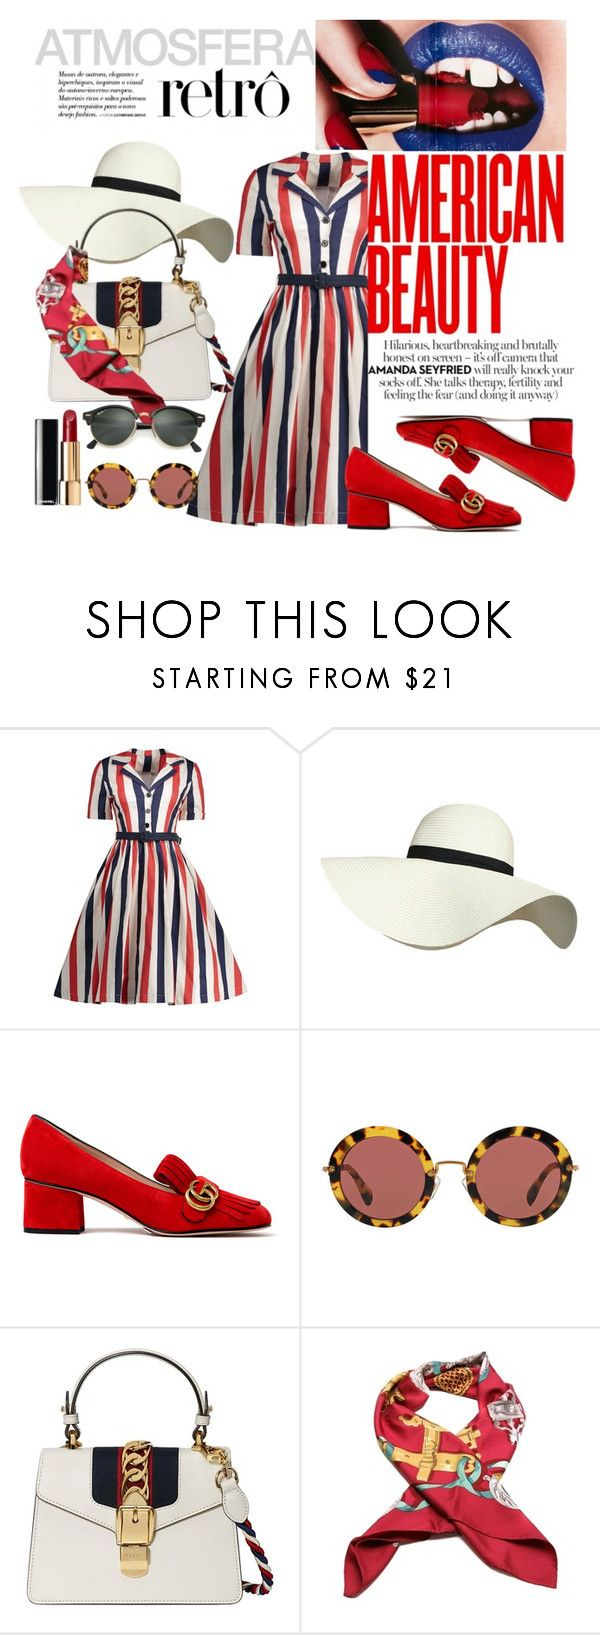 """Atmosfera retro"" by user22 ❤ liked on Polyvore featuring Pilot, Gucci, Miu Miu, Chanel, Hermès and Ray-Ban"